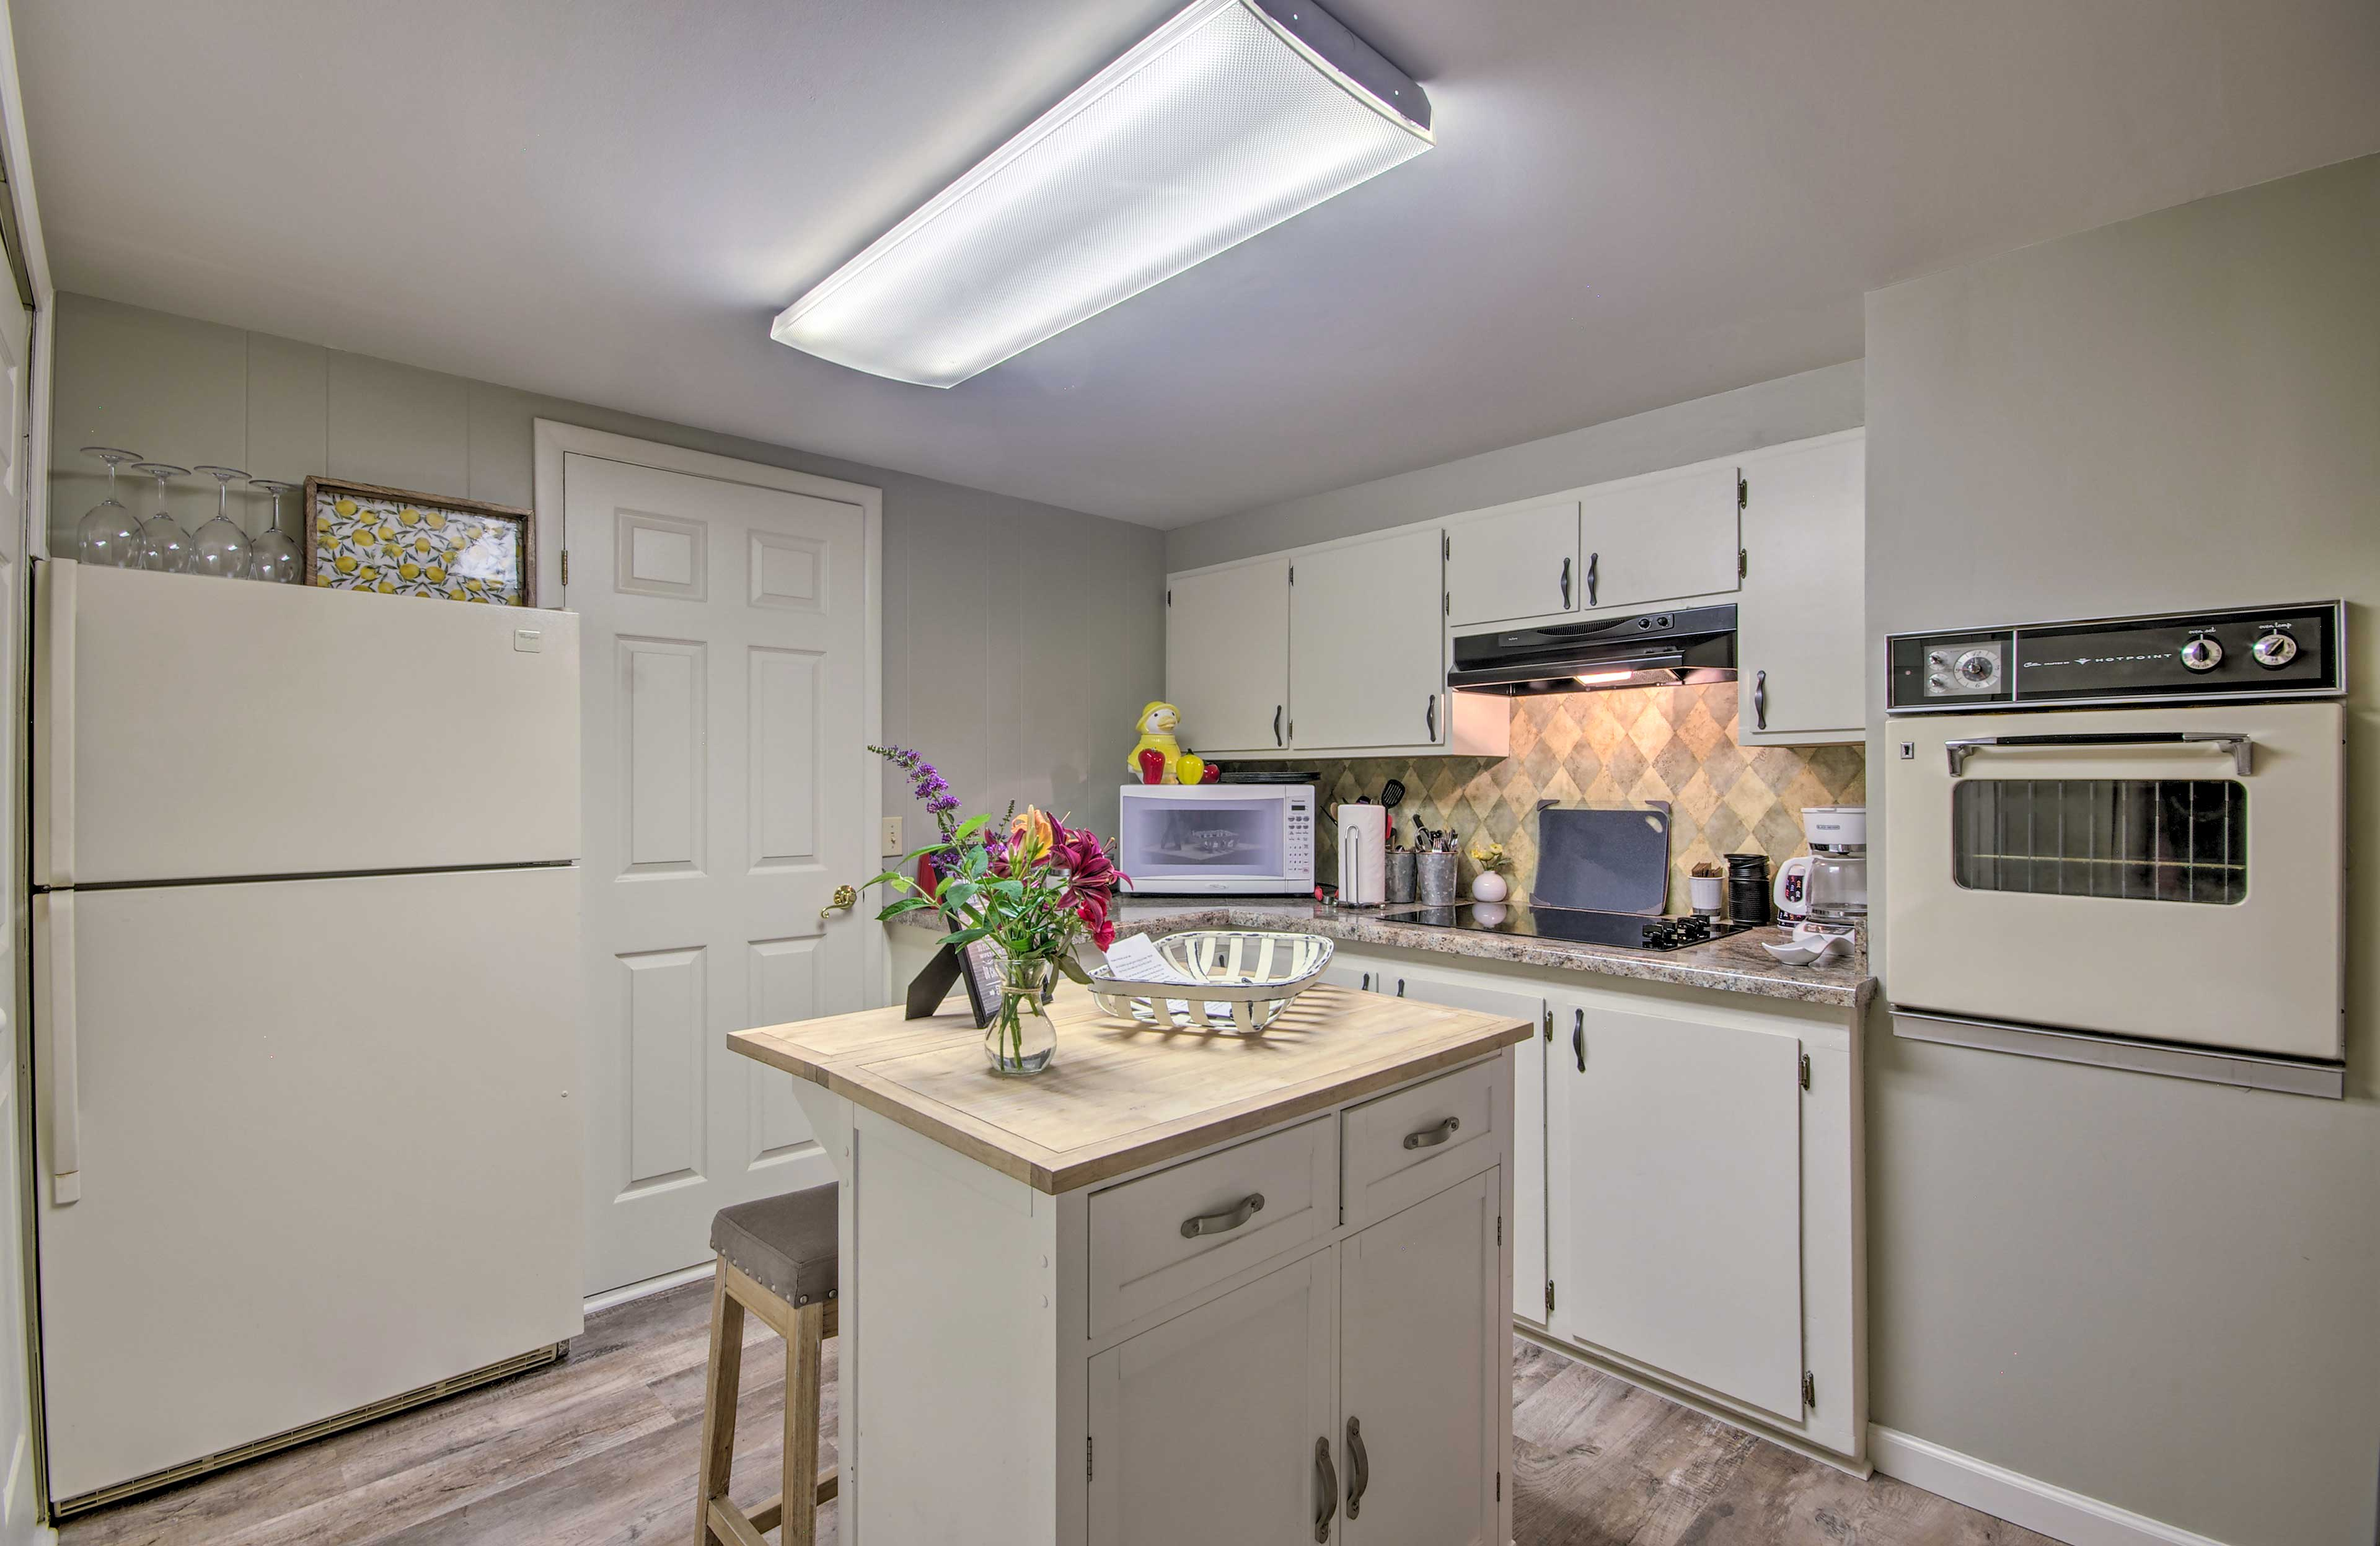 The kitchen has plenty of space to snack!